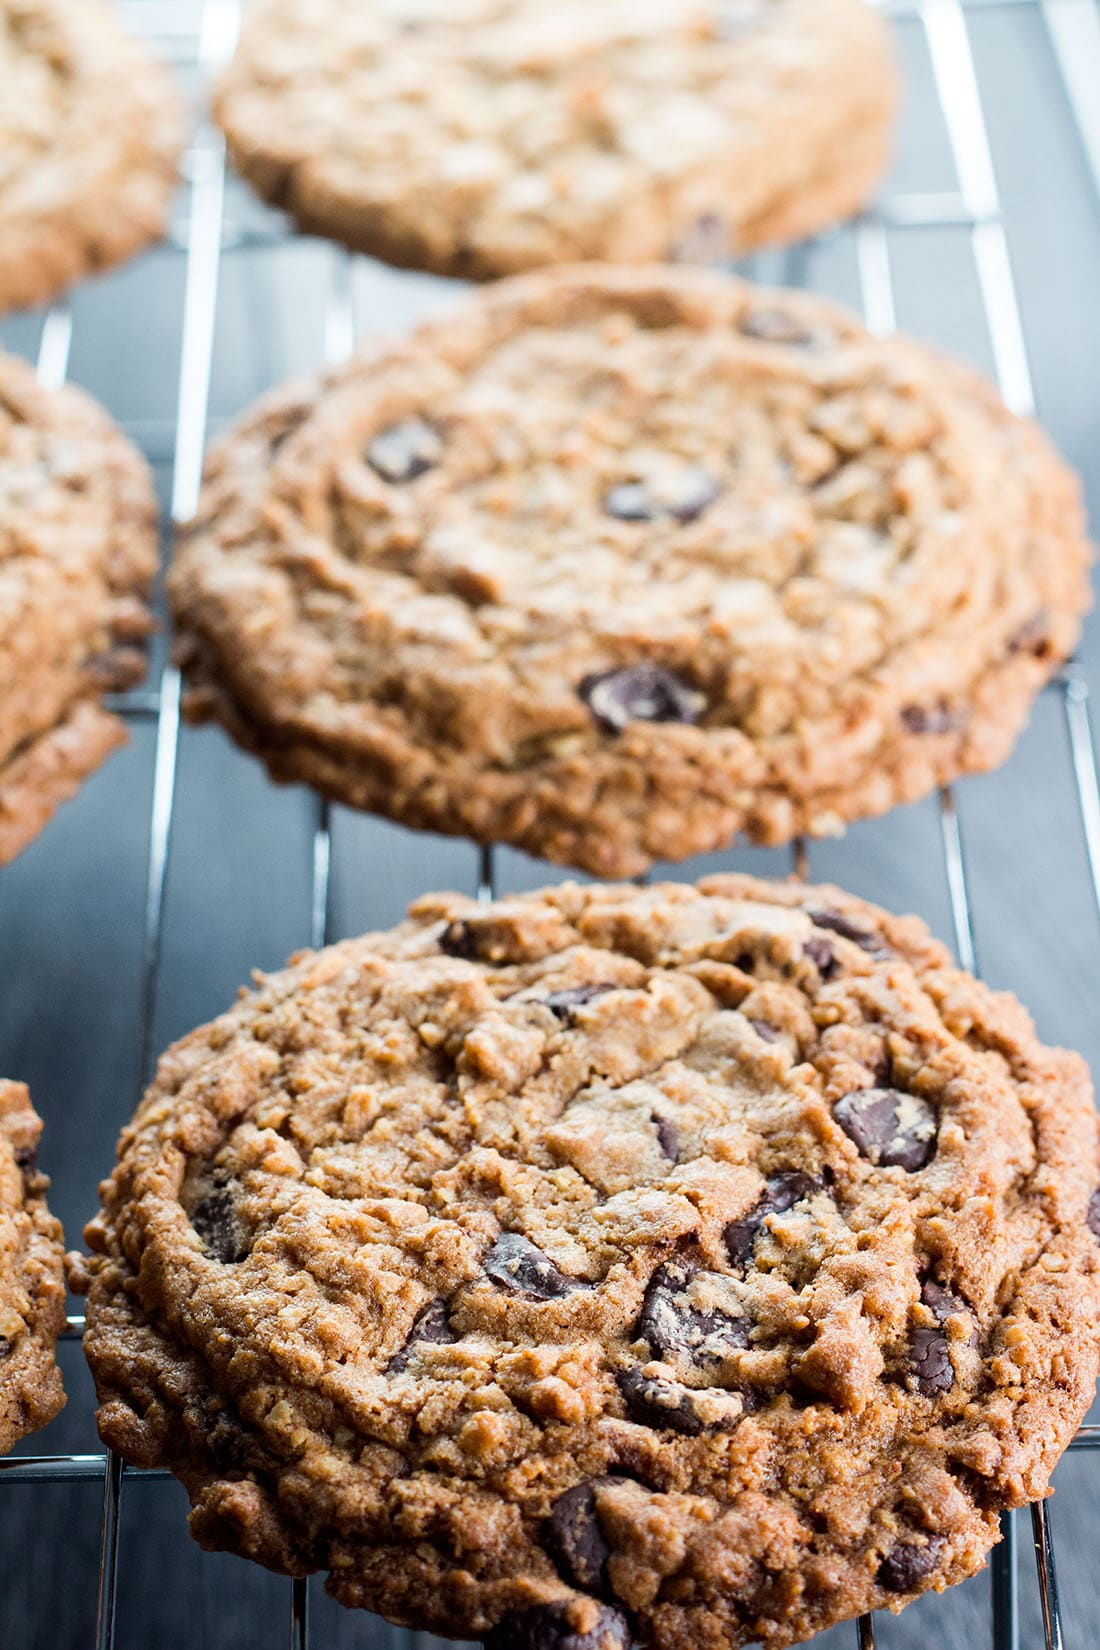 Chocolate Chip Oatmeal Cookies - One fantastic cookie recipe!